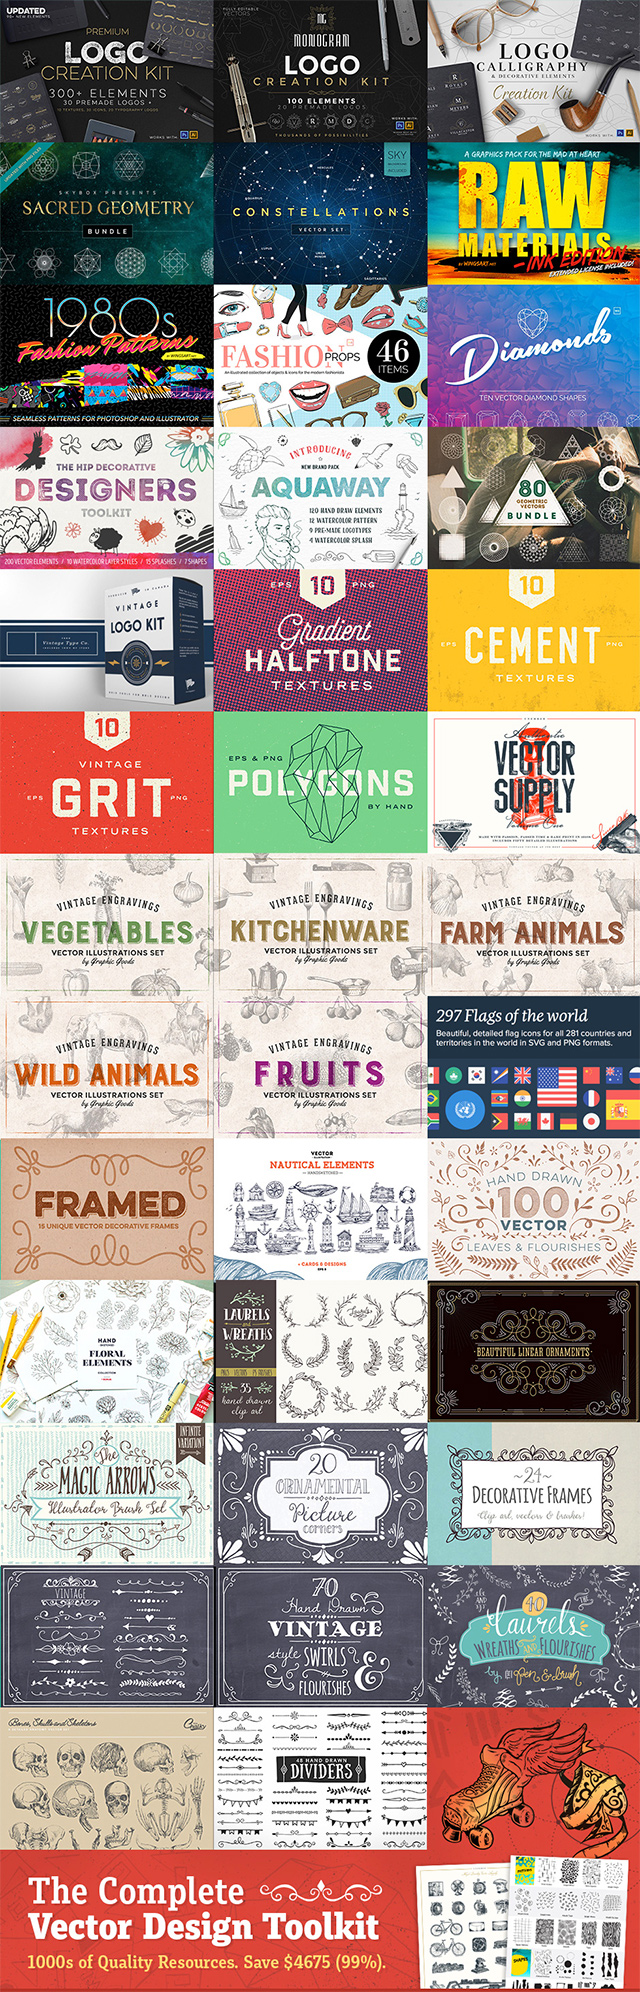 HUGE Vector Design Toolkit: 1000s of Quality Resources for $29 (98% Off)